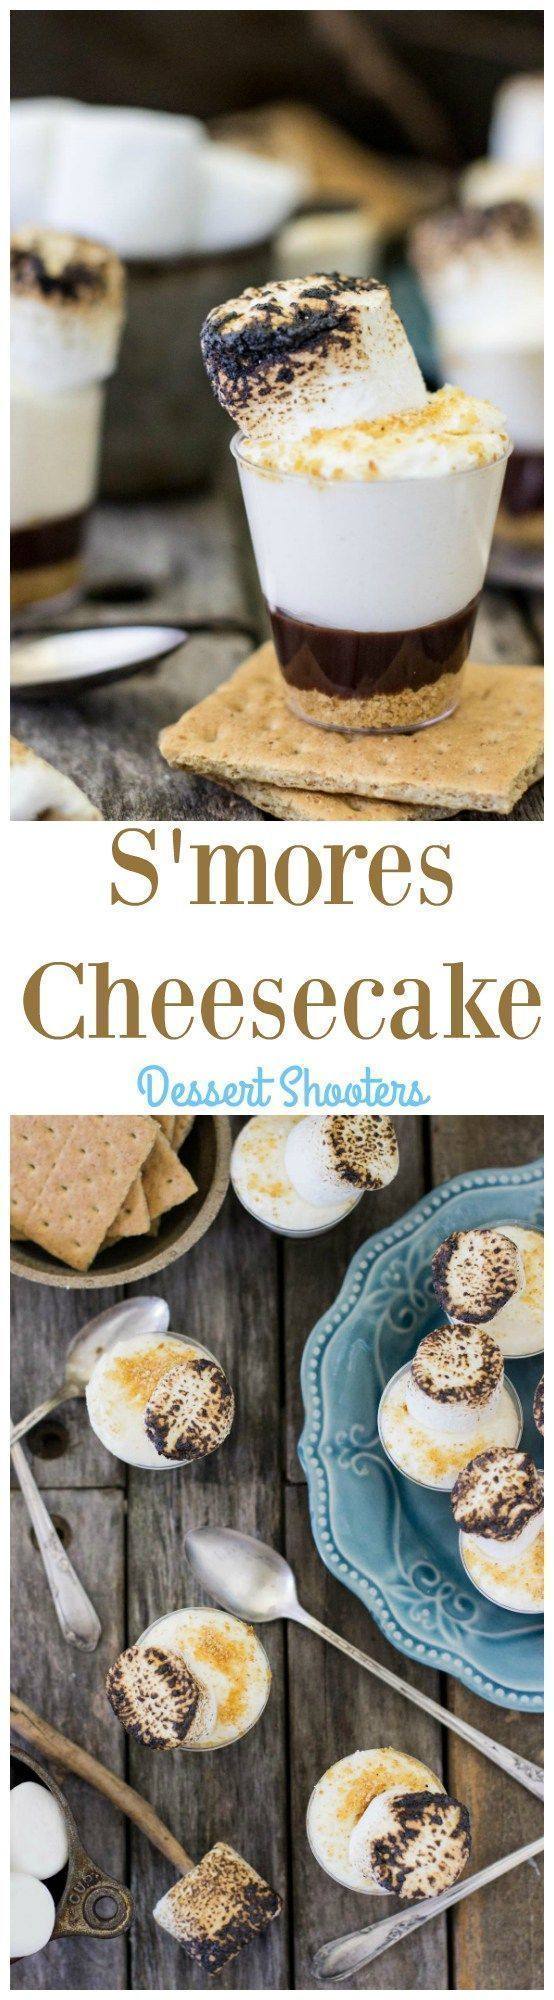 S'mores Cheesecake Dessert Shooters #dessertshooters S'mores Cheesecake Dessert Shooters #dessertshooters S'mores Cheesecake Dessert Shooters #dessertshooters S'mores Cheesecake Dessert Shooters #dessertshooters S'mores Cheesecake Dessert Shooters #dessertshooters S'mores Cheesecake Dessert Shooters #dessertshooters S'mores Cheesecake Dessert Shooters #dessertshooters S'mores Cheesecake Dessert Shooters #dessertshooters S'mores Cheesecake Dessert Shooters #dessertshooters S'mores Cheesecake Dess #dessertshooters